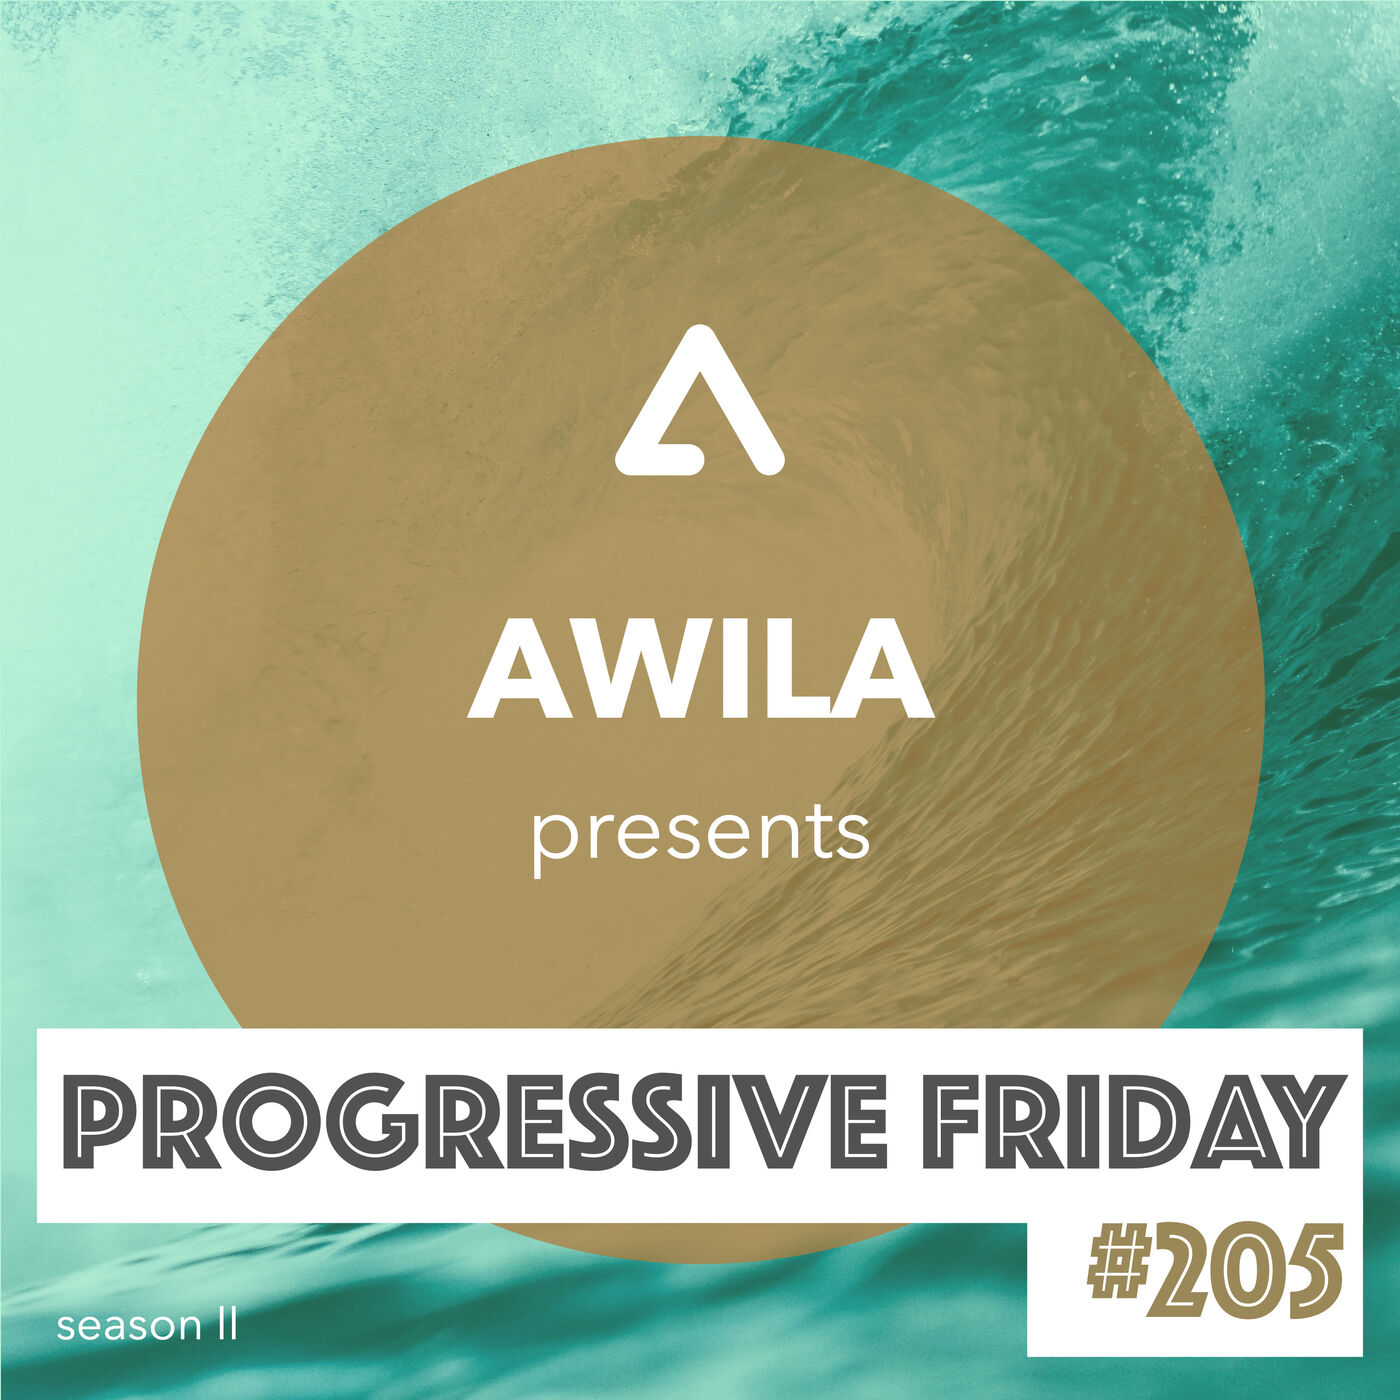 Progressive Friday #205